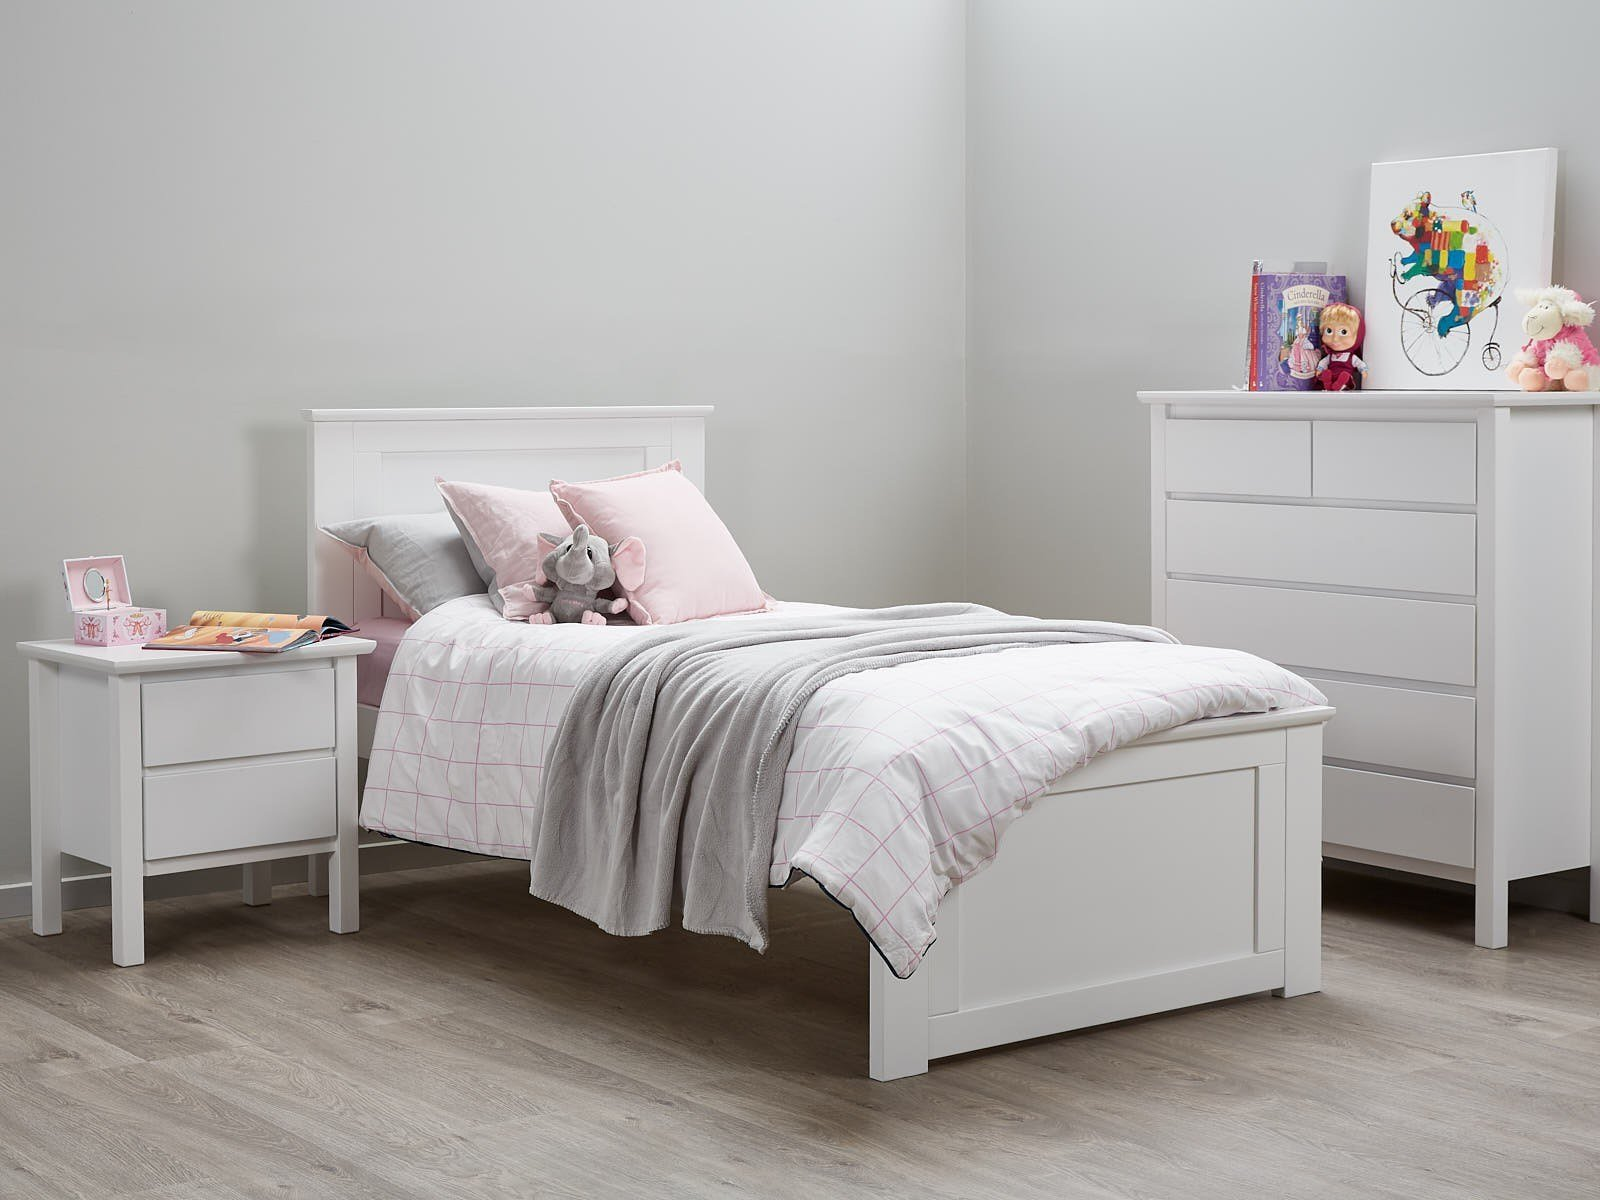 Best White Single Bedroom Suites 50 75 Off Sale Hardwood With Pictures